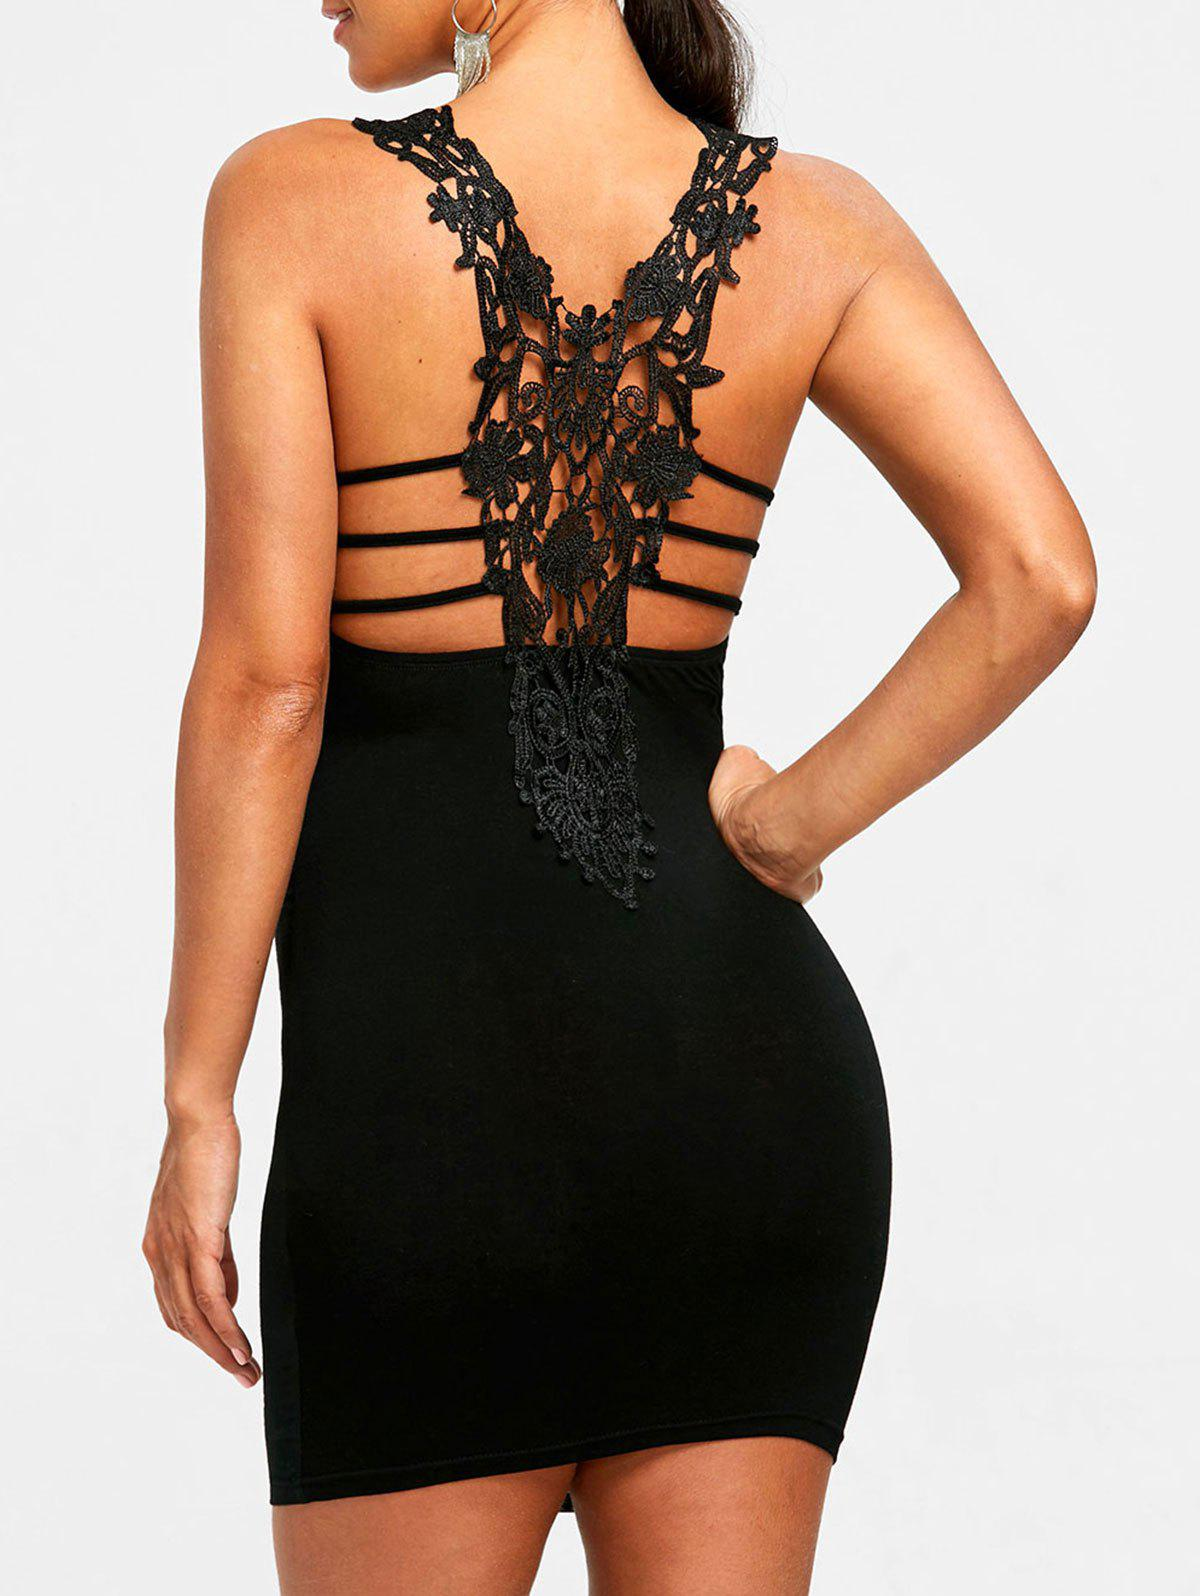 Trendy Floral Lace Trim Cutout Tight Dress